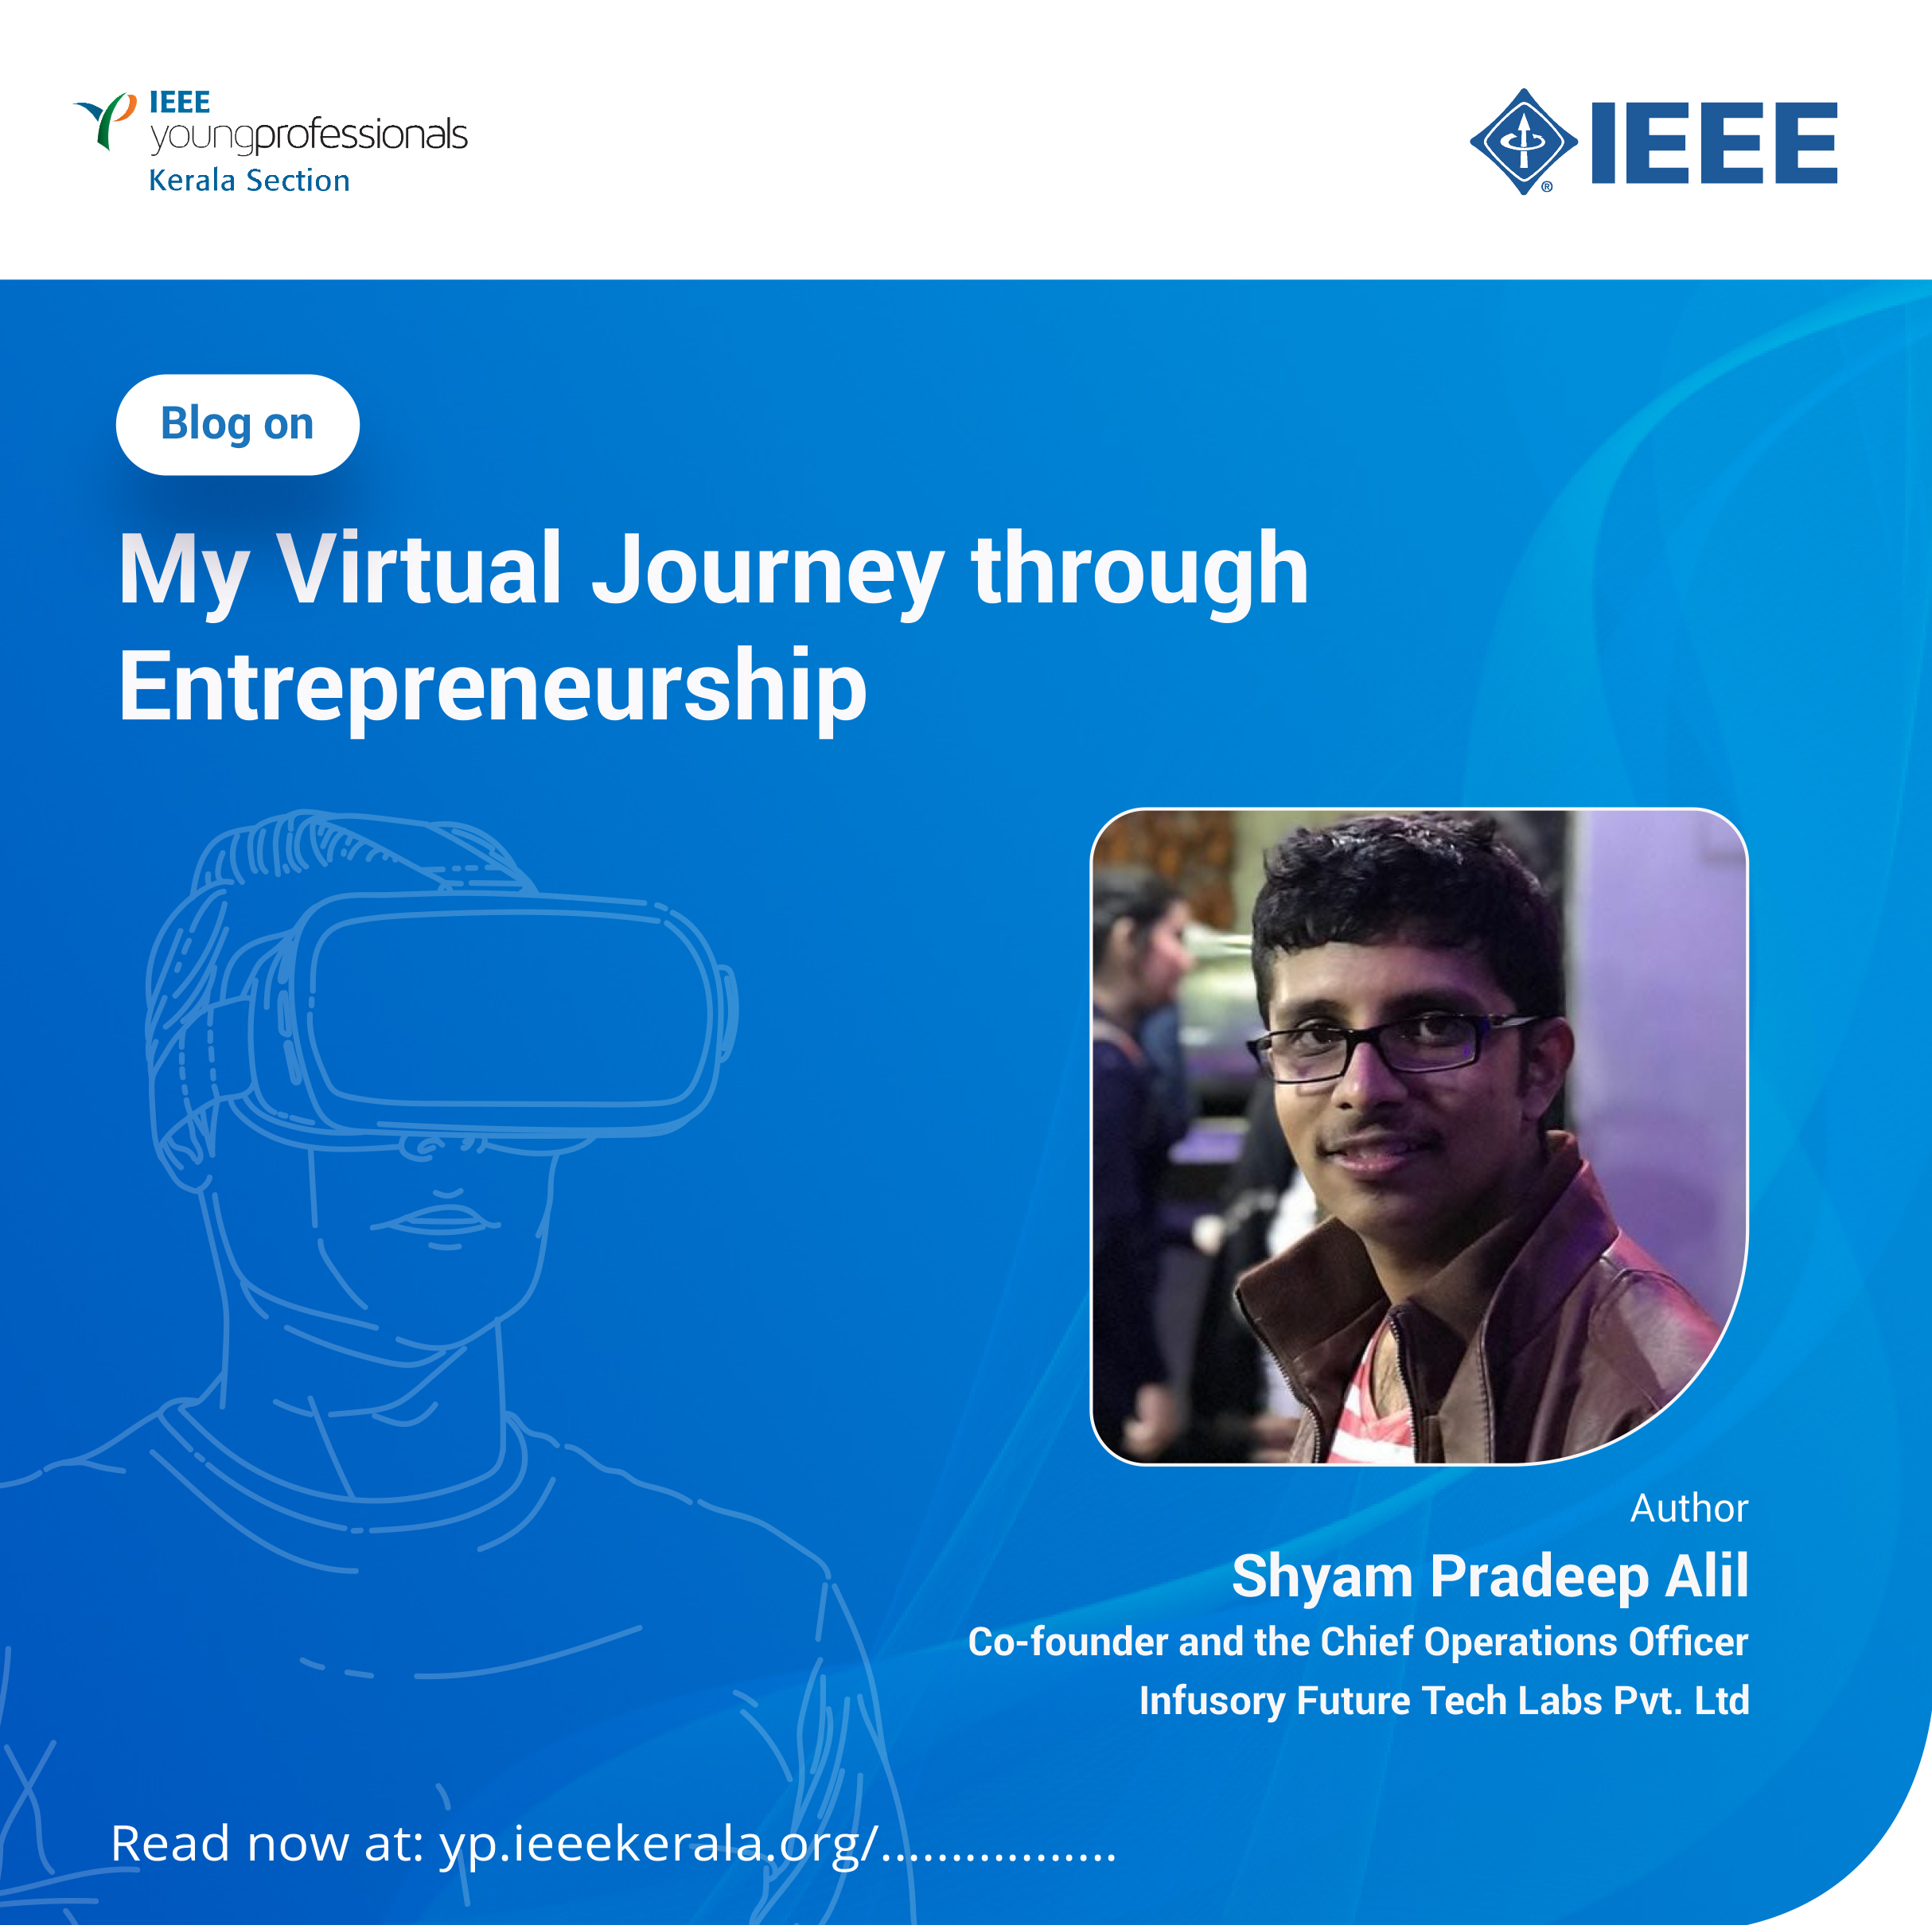 My Virtual Journey through Entrepreneurship